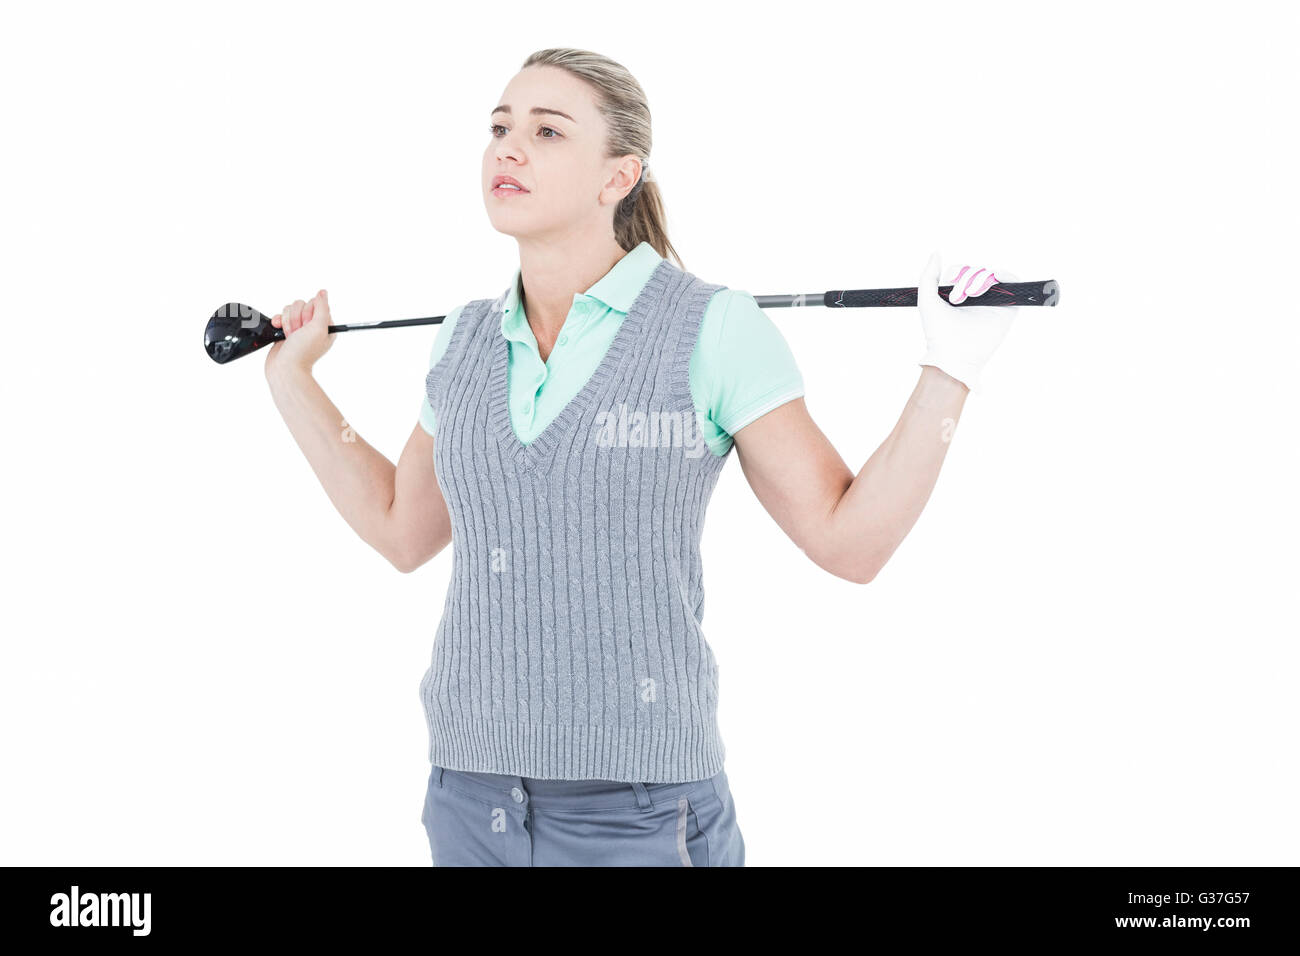 Pretty blonde posing with golf equipment - Stock Image